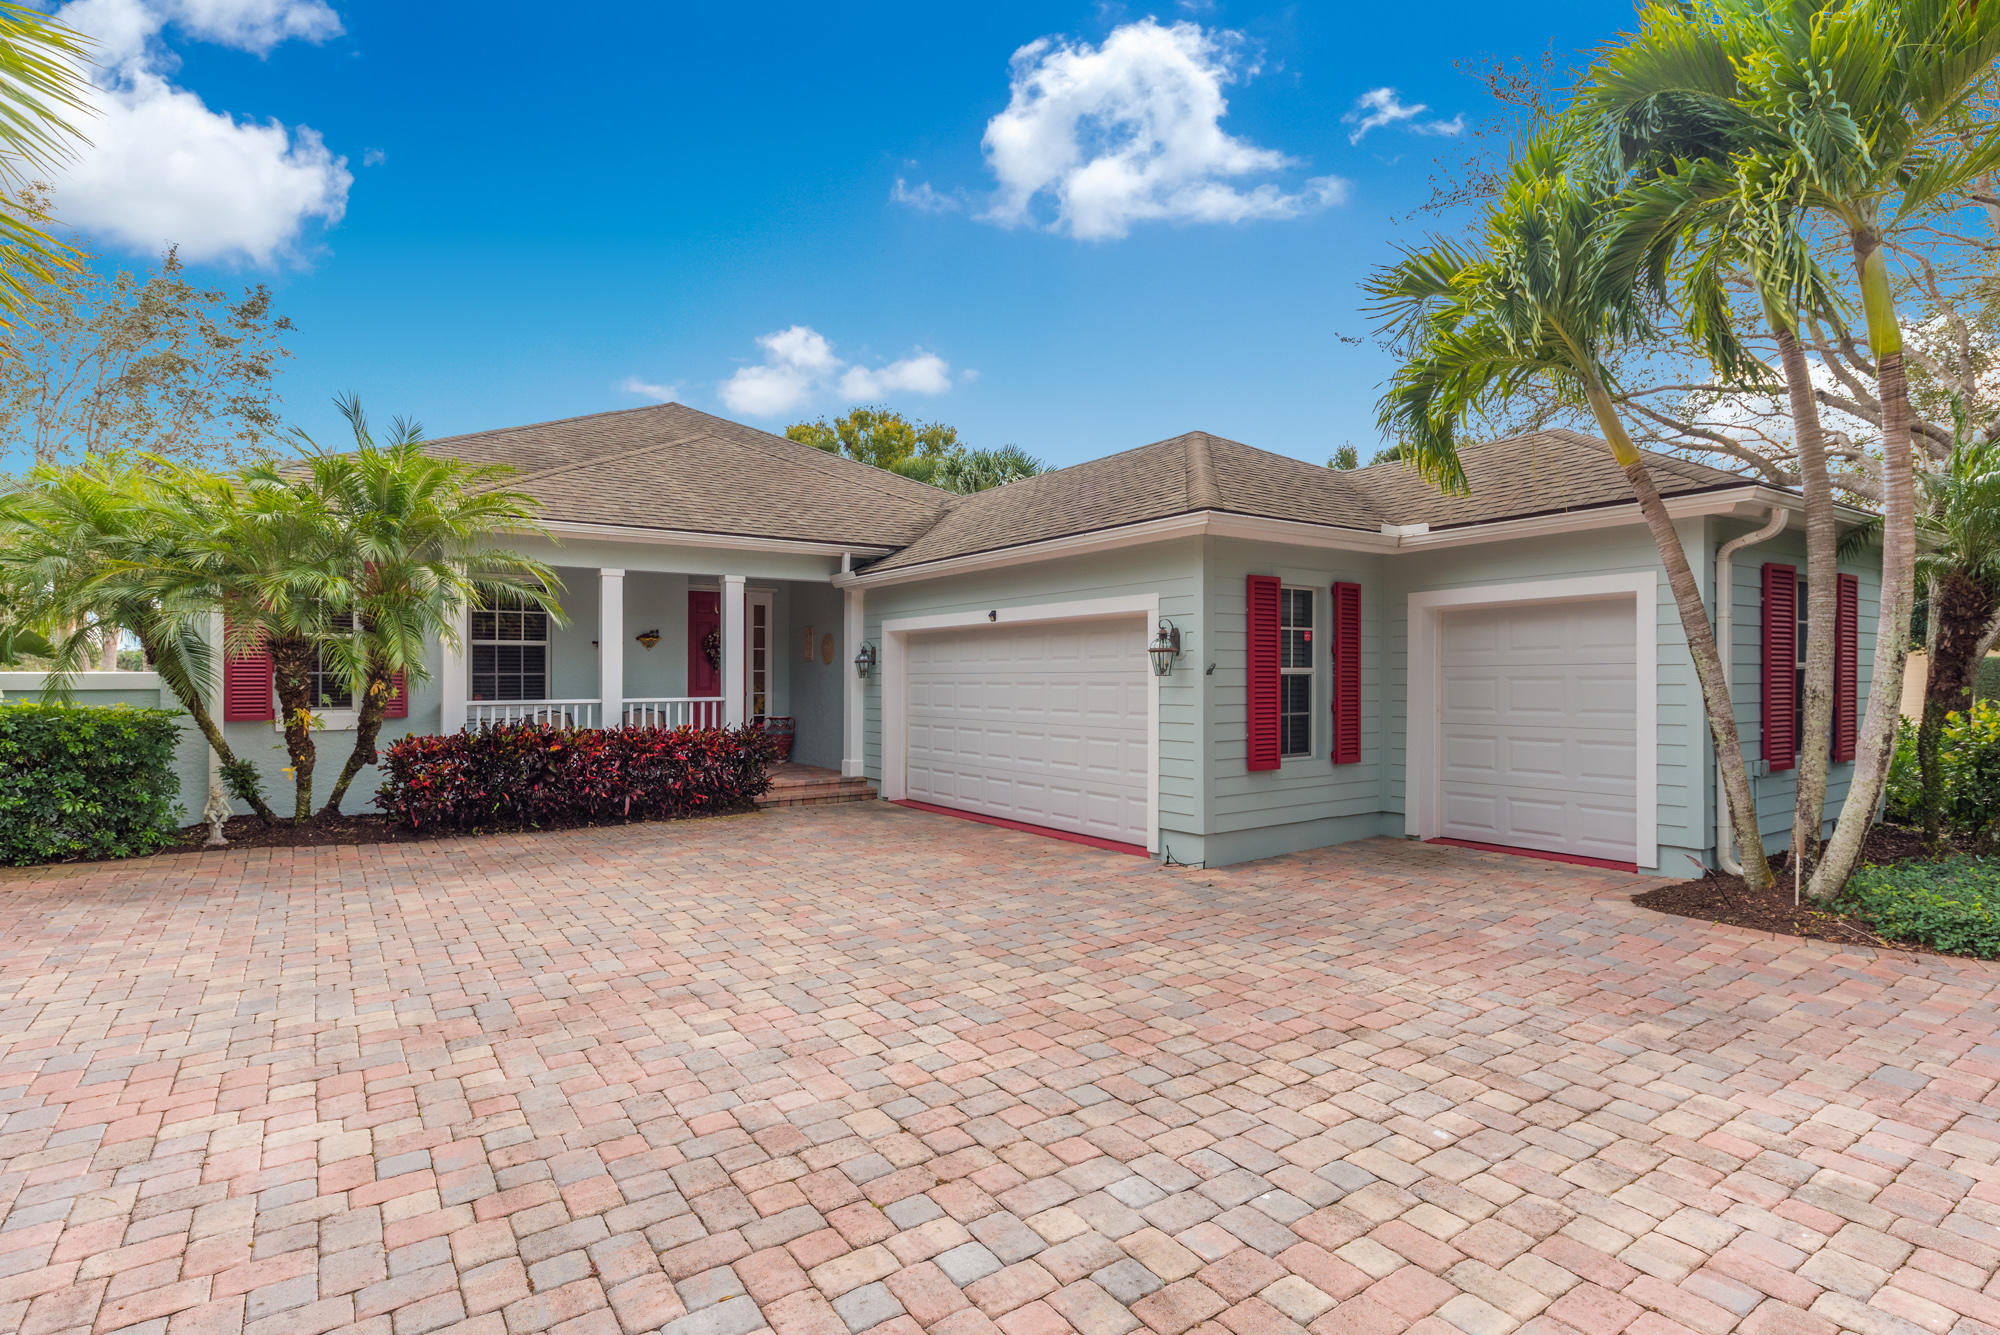 202 Oak Hammock Circle - Vero Beach, Florida